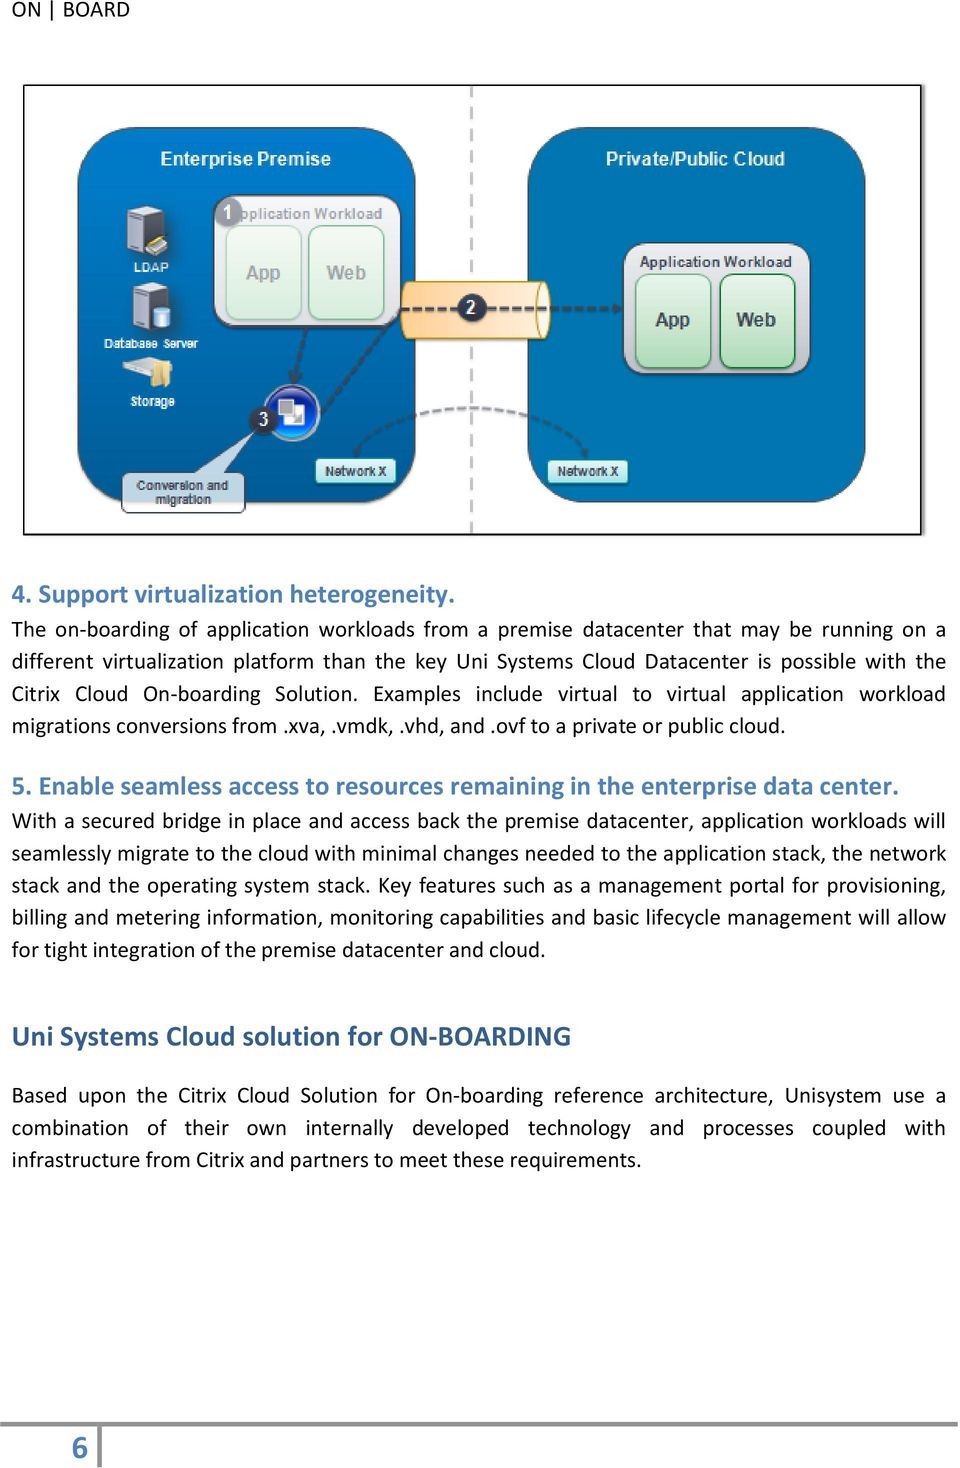 The on-boarding of application workloads from a premise datacenter that may be running on a different virtualization platform than the key Uni Systems Cloud Datacenter is possible with the Citrix